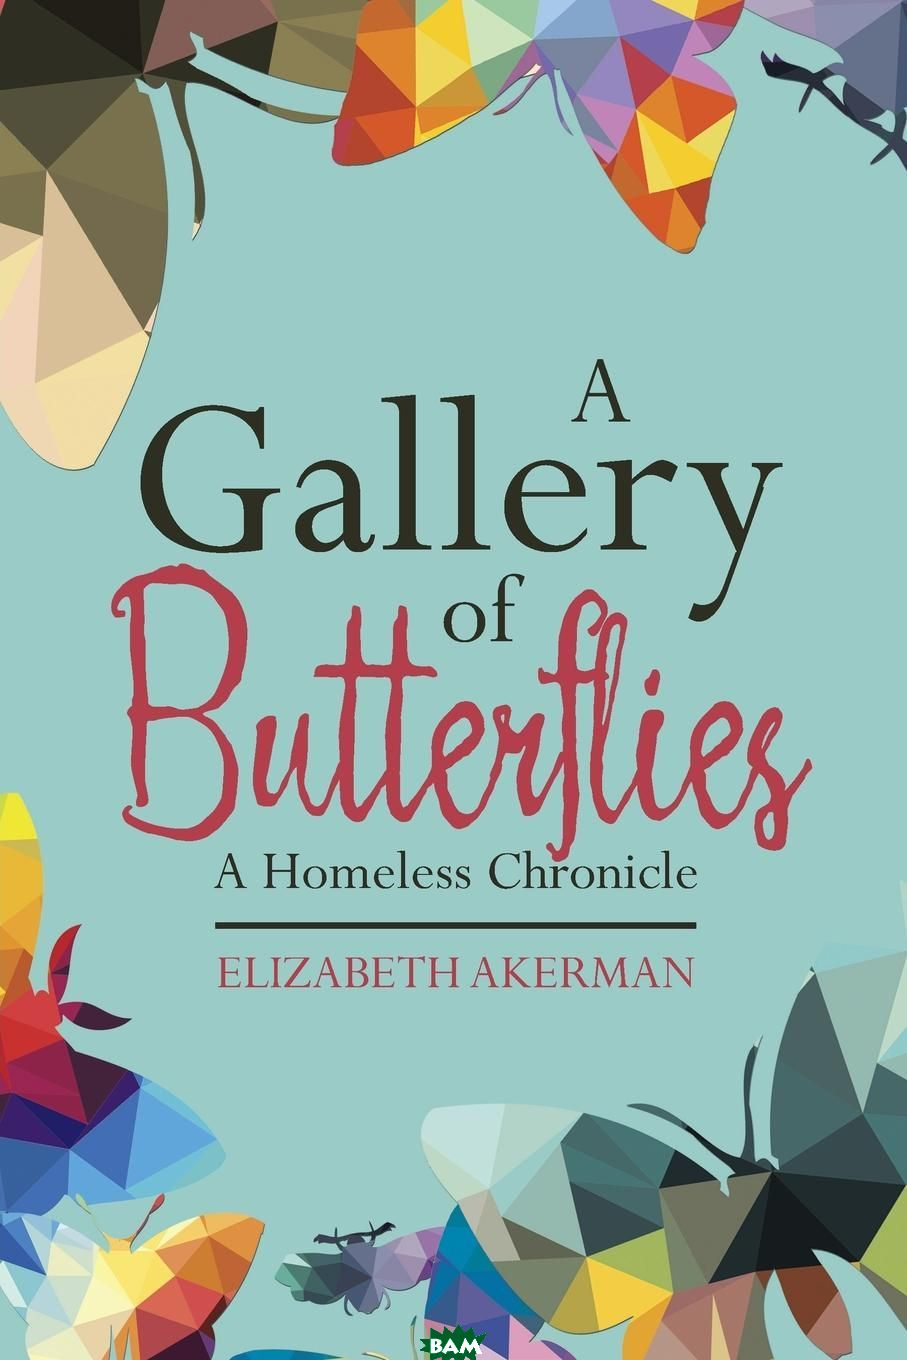 A Gallery of Butterflies. A Homeless Chronicle